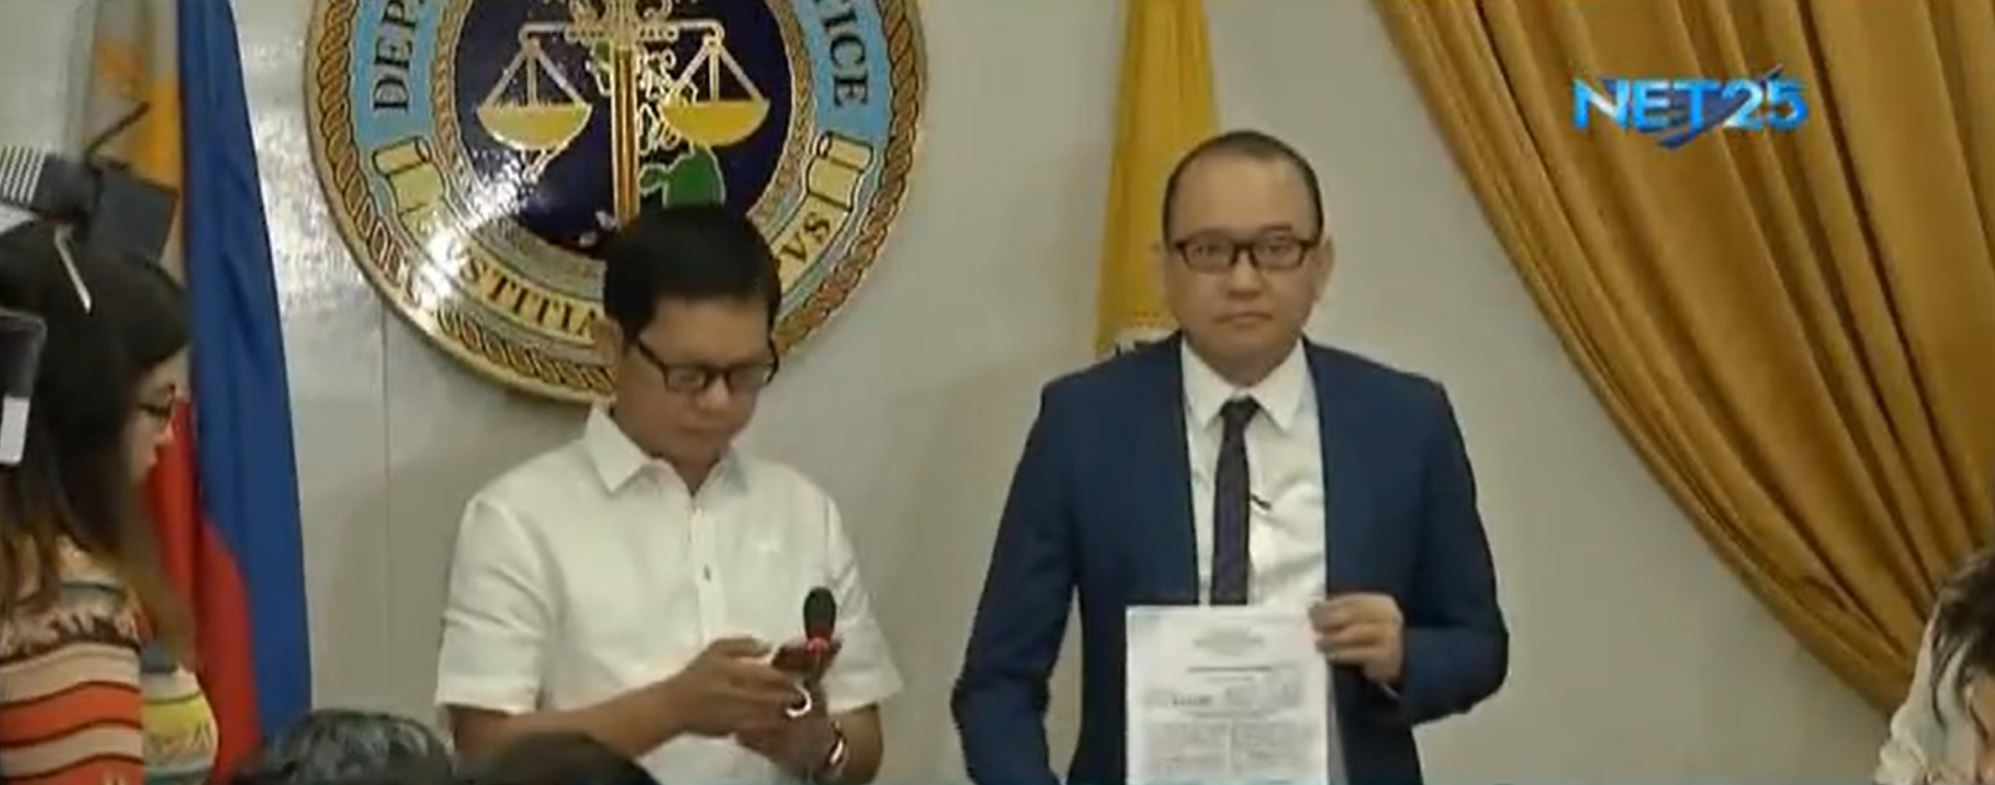 The two immigration deputy commissioners who are now in hot water, Michael Robles and Al Argosino.  (Eagle News Service)